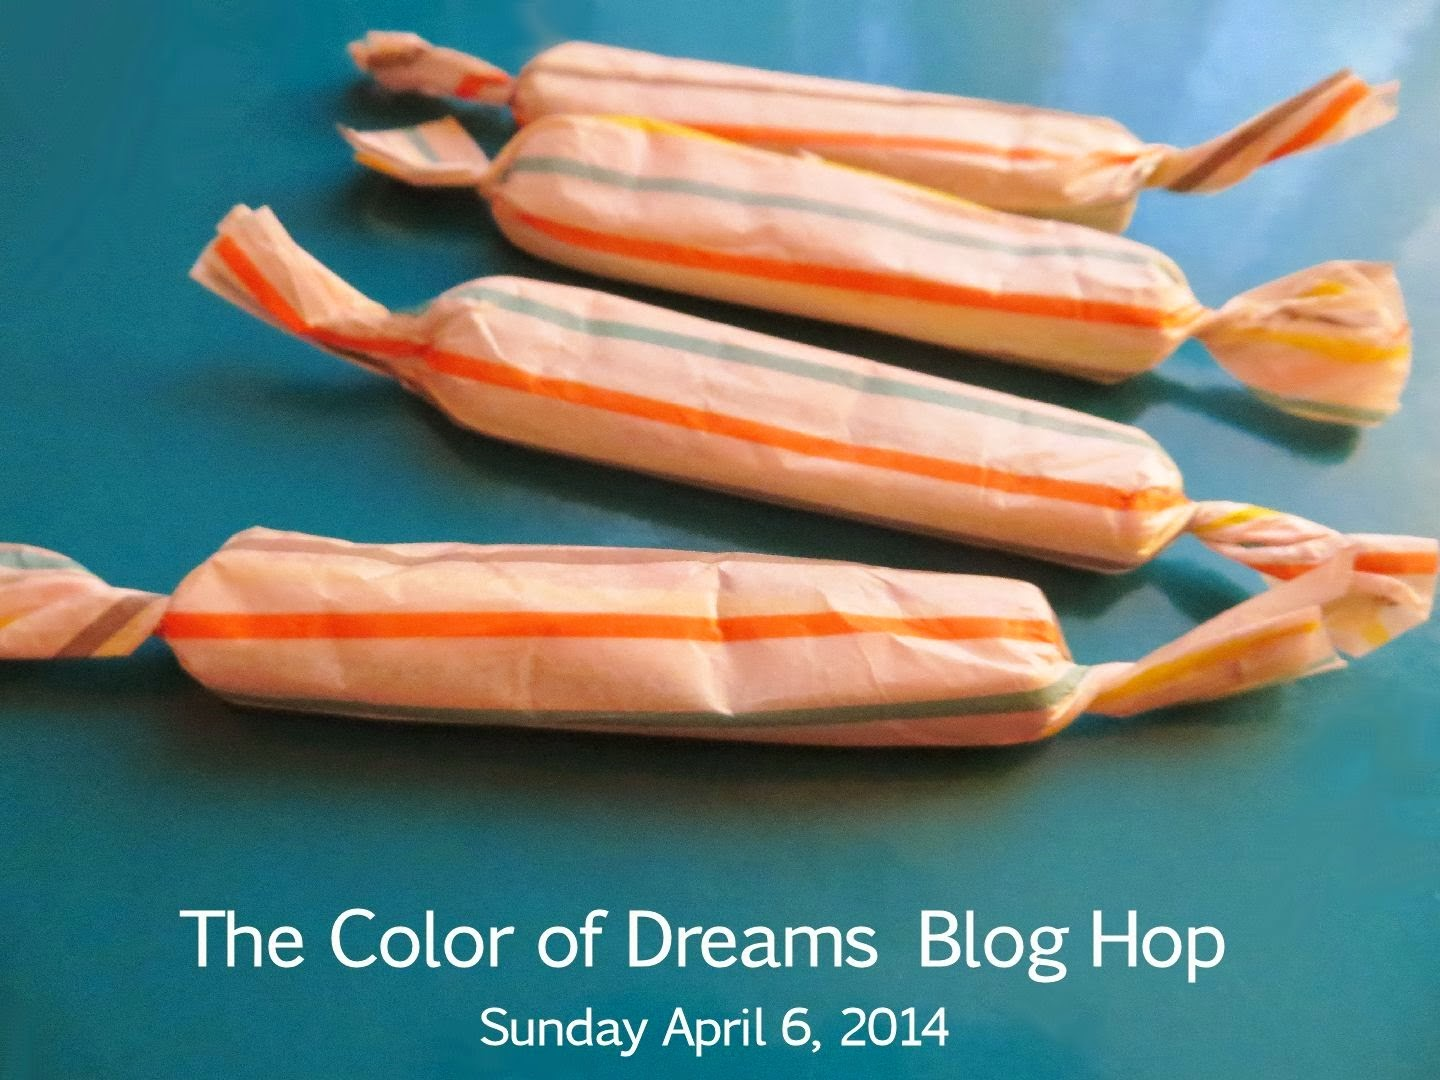 The Color of Dreams Blog Hop